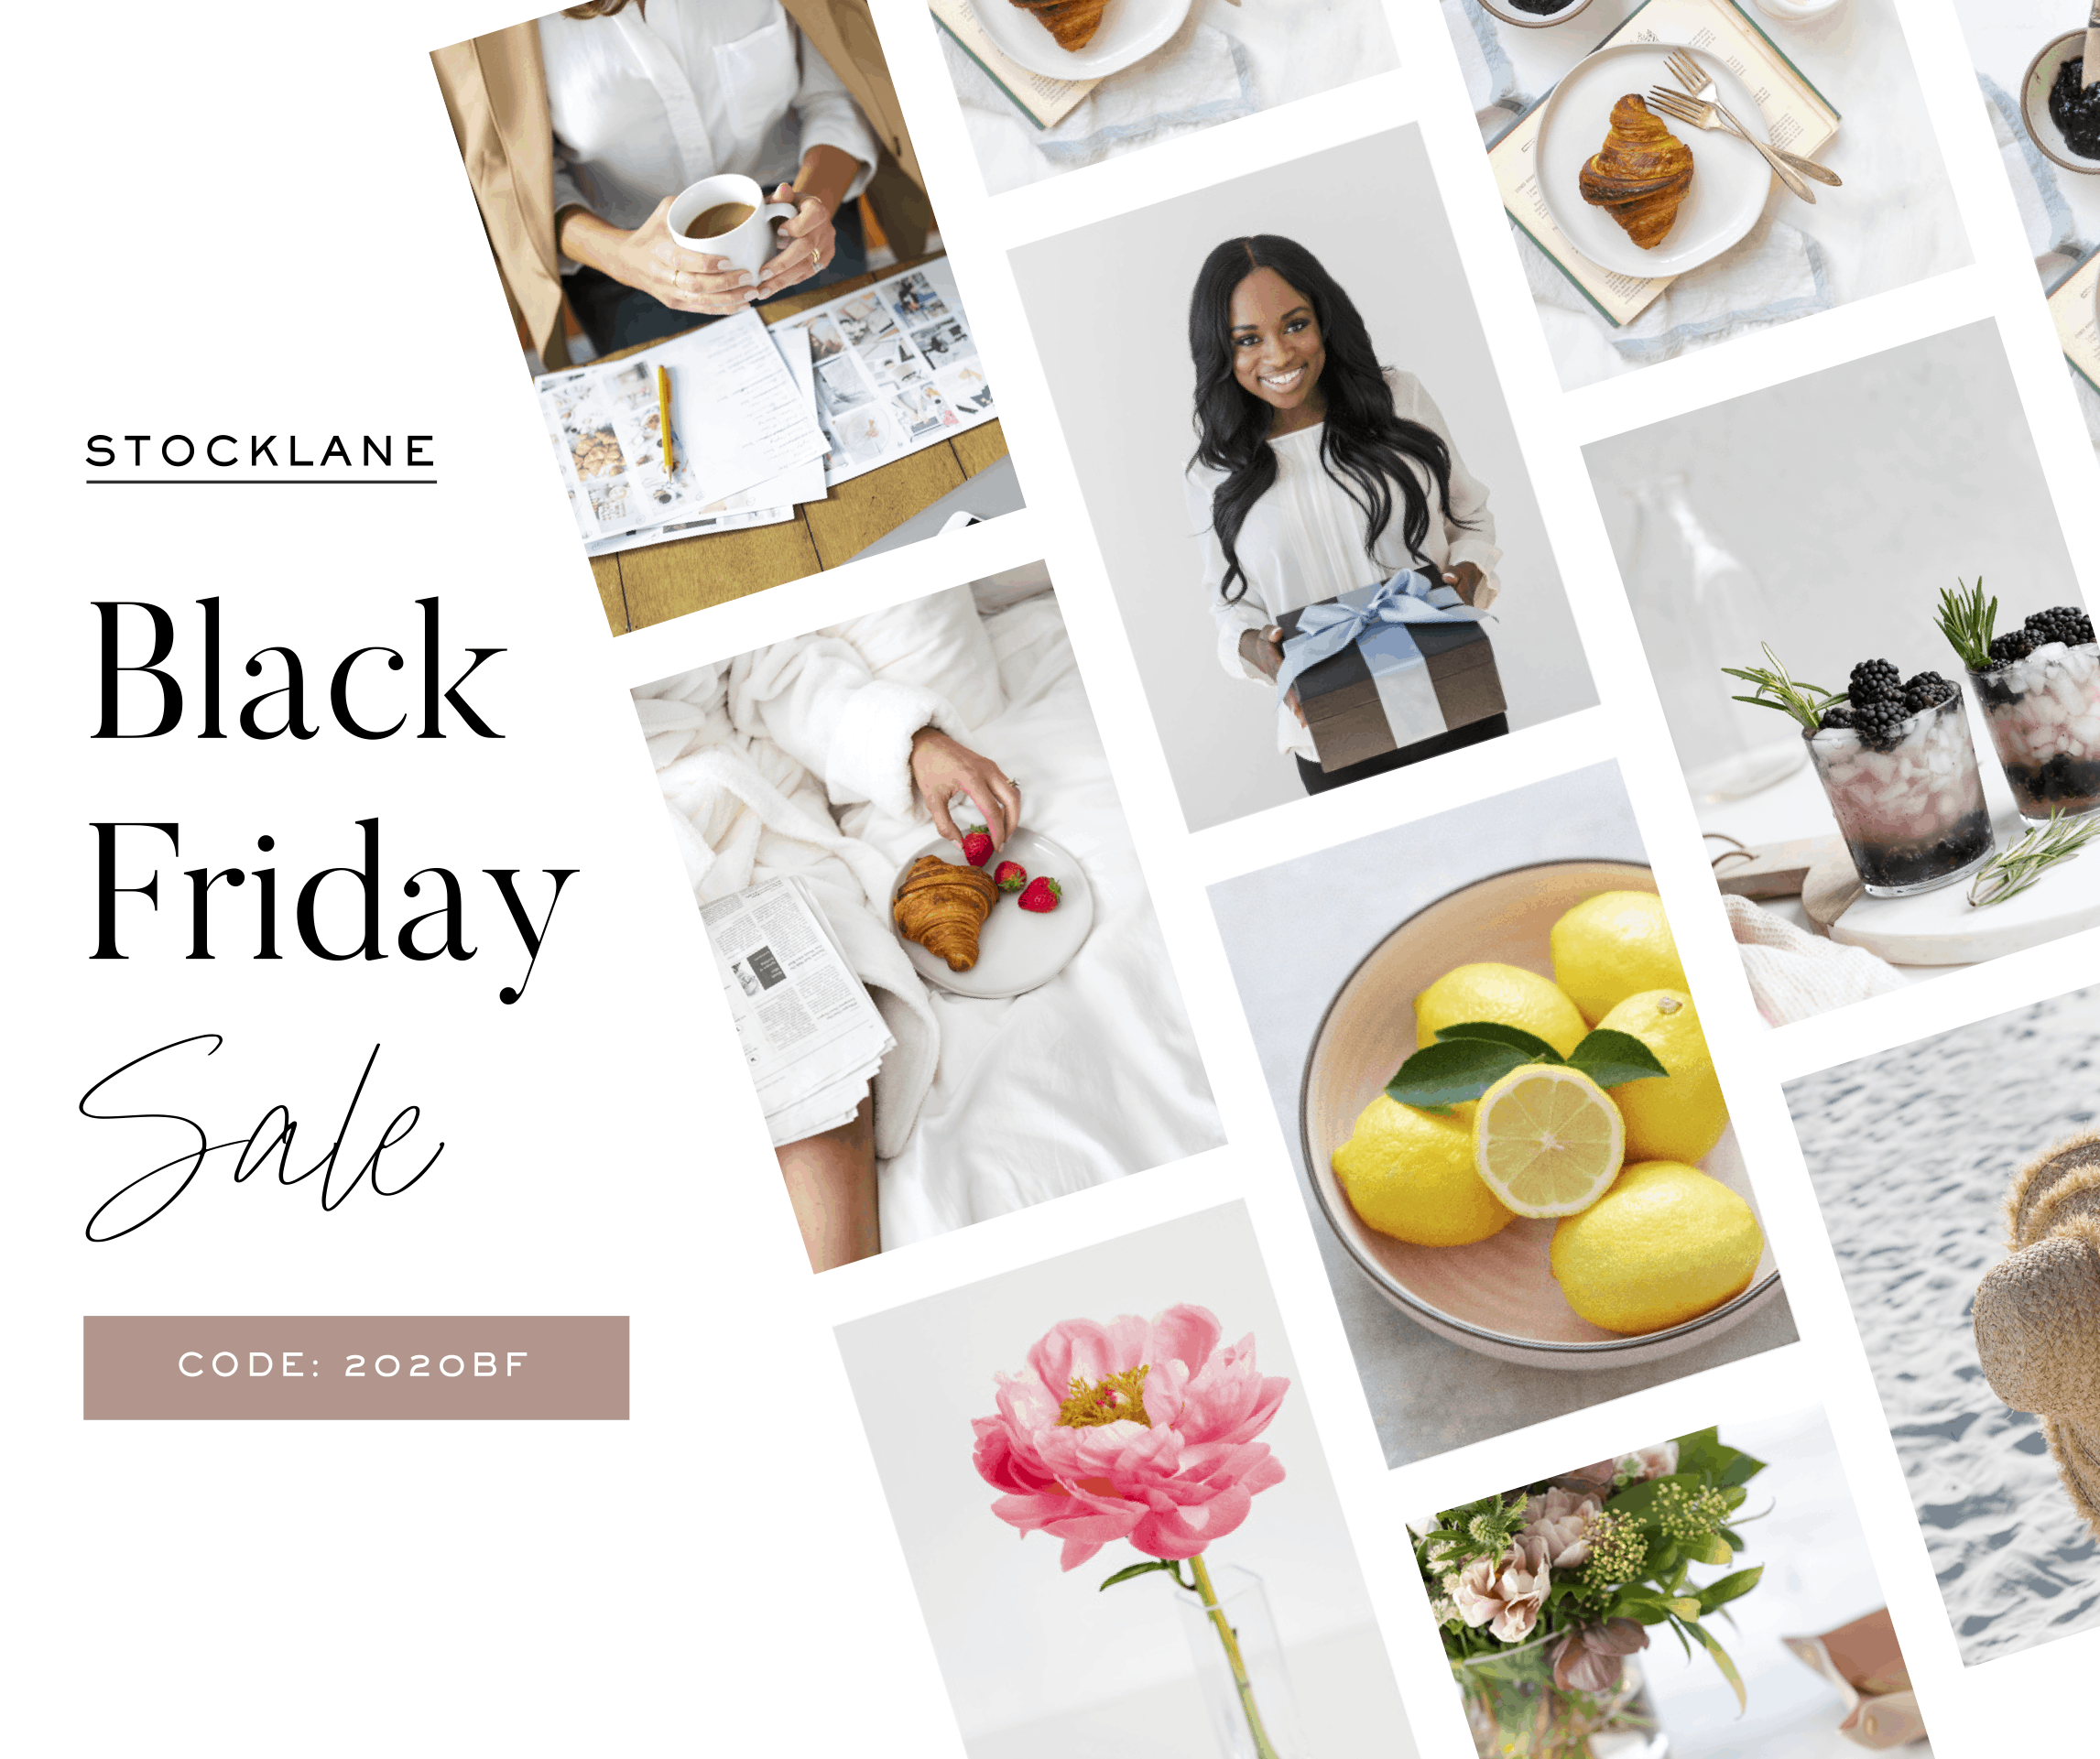 Stocklane Black Friday Sale